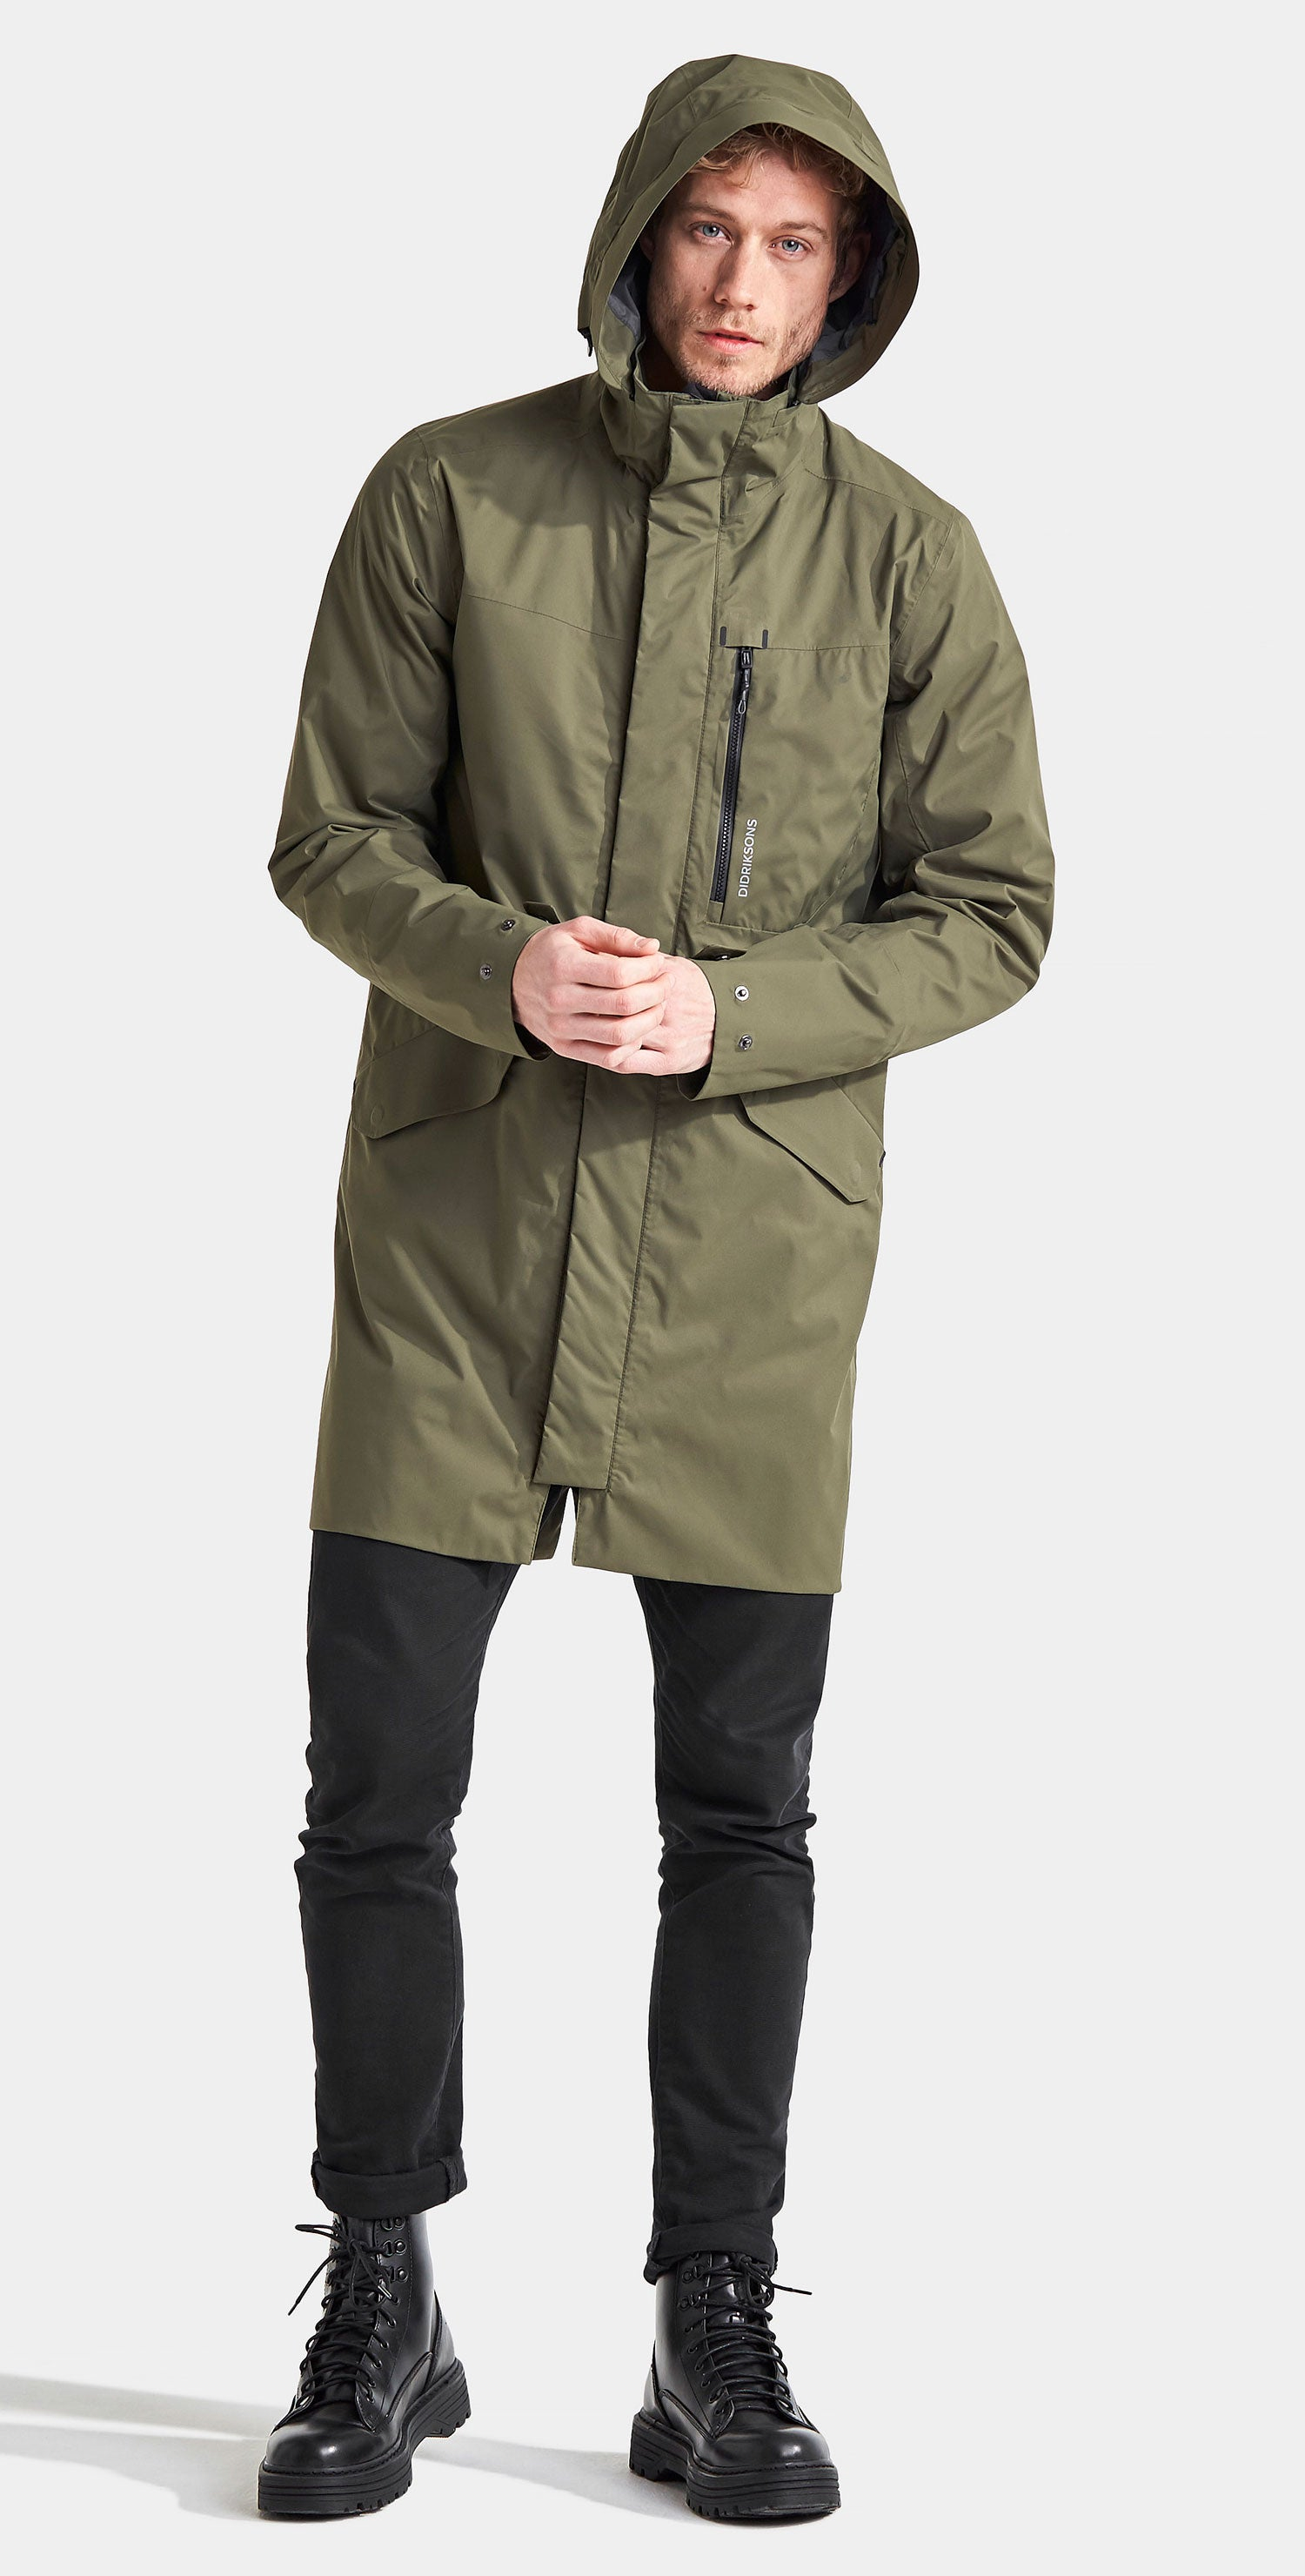 Green Parka worn with the hood